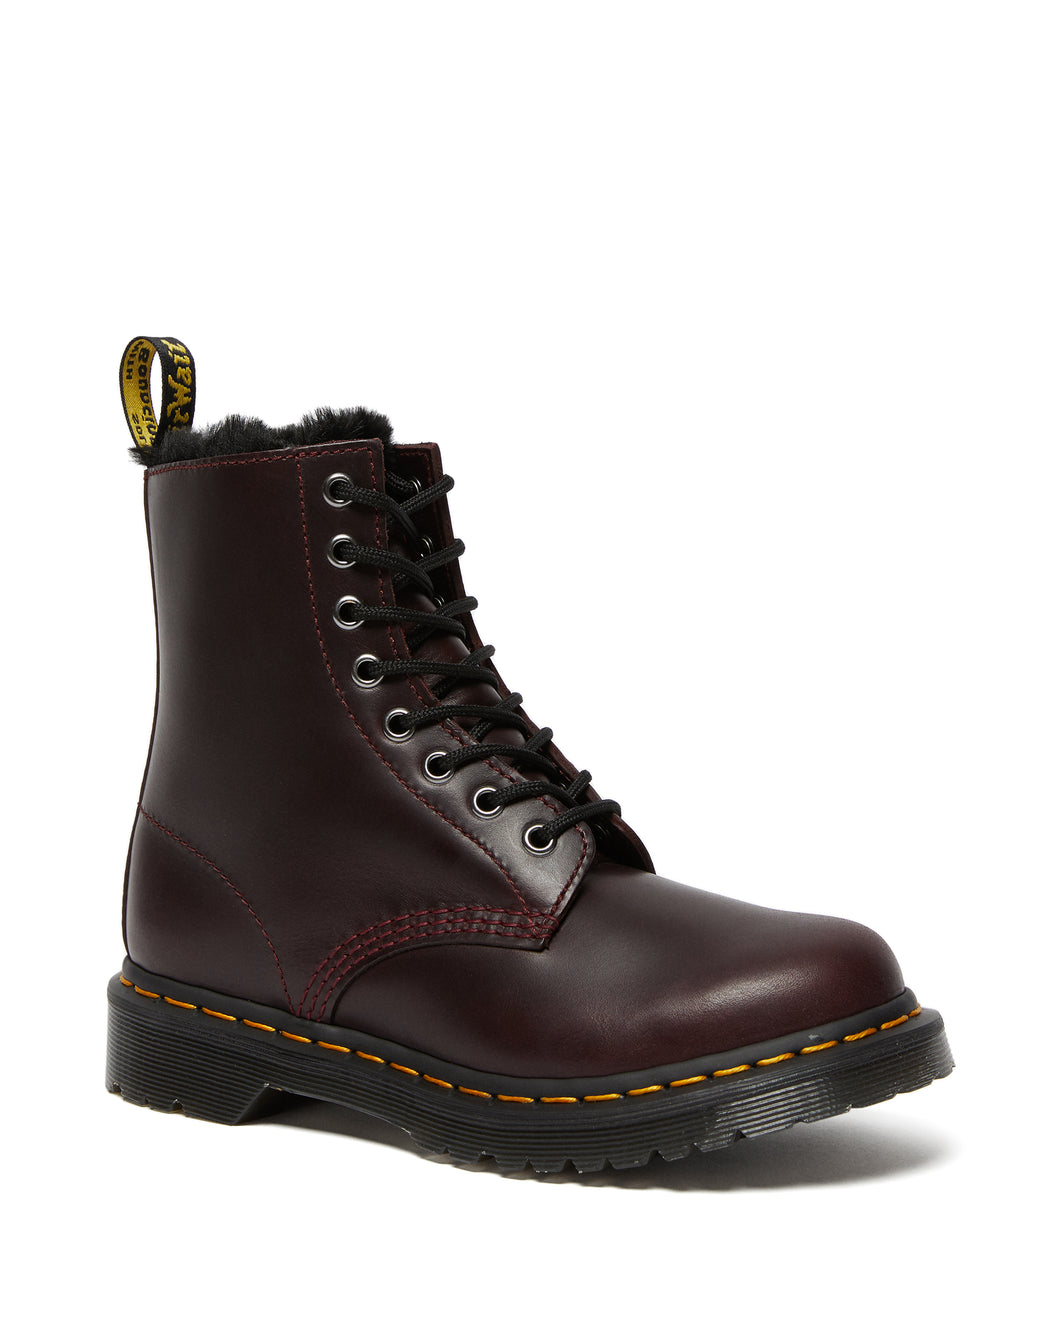 1460 Serena Faux Fur Lined Lace Up Boots (oxblood)